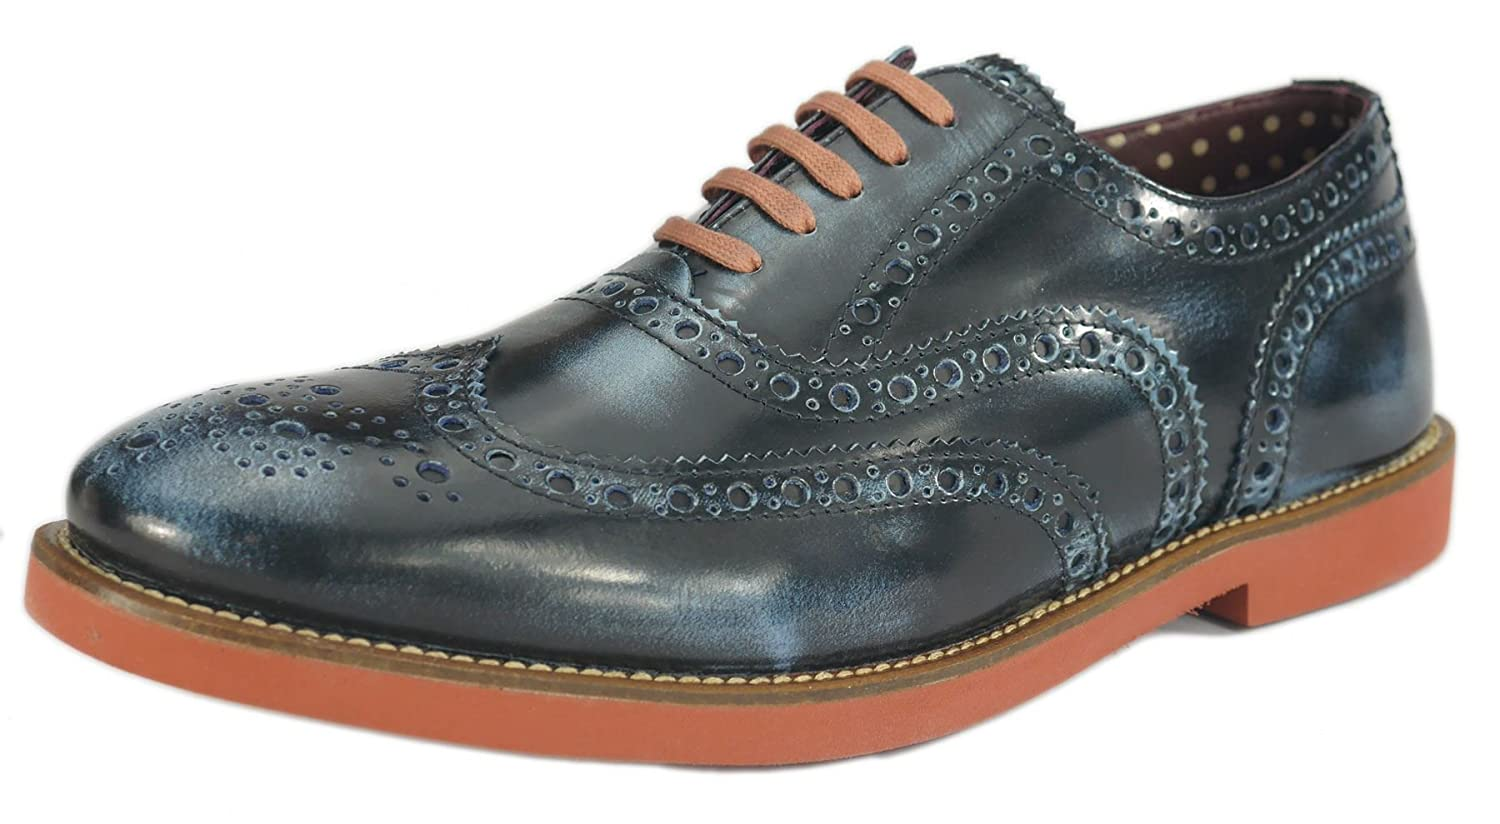 London Brogues Farnham Navy/Red Mens Leather Brogue Shoes, Size 8